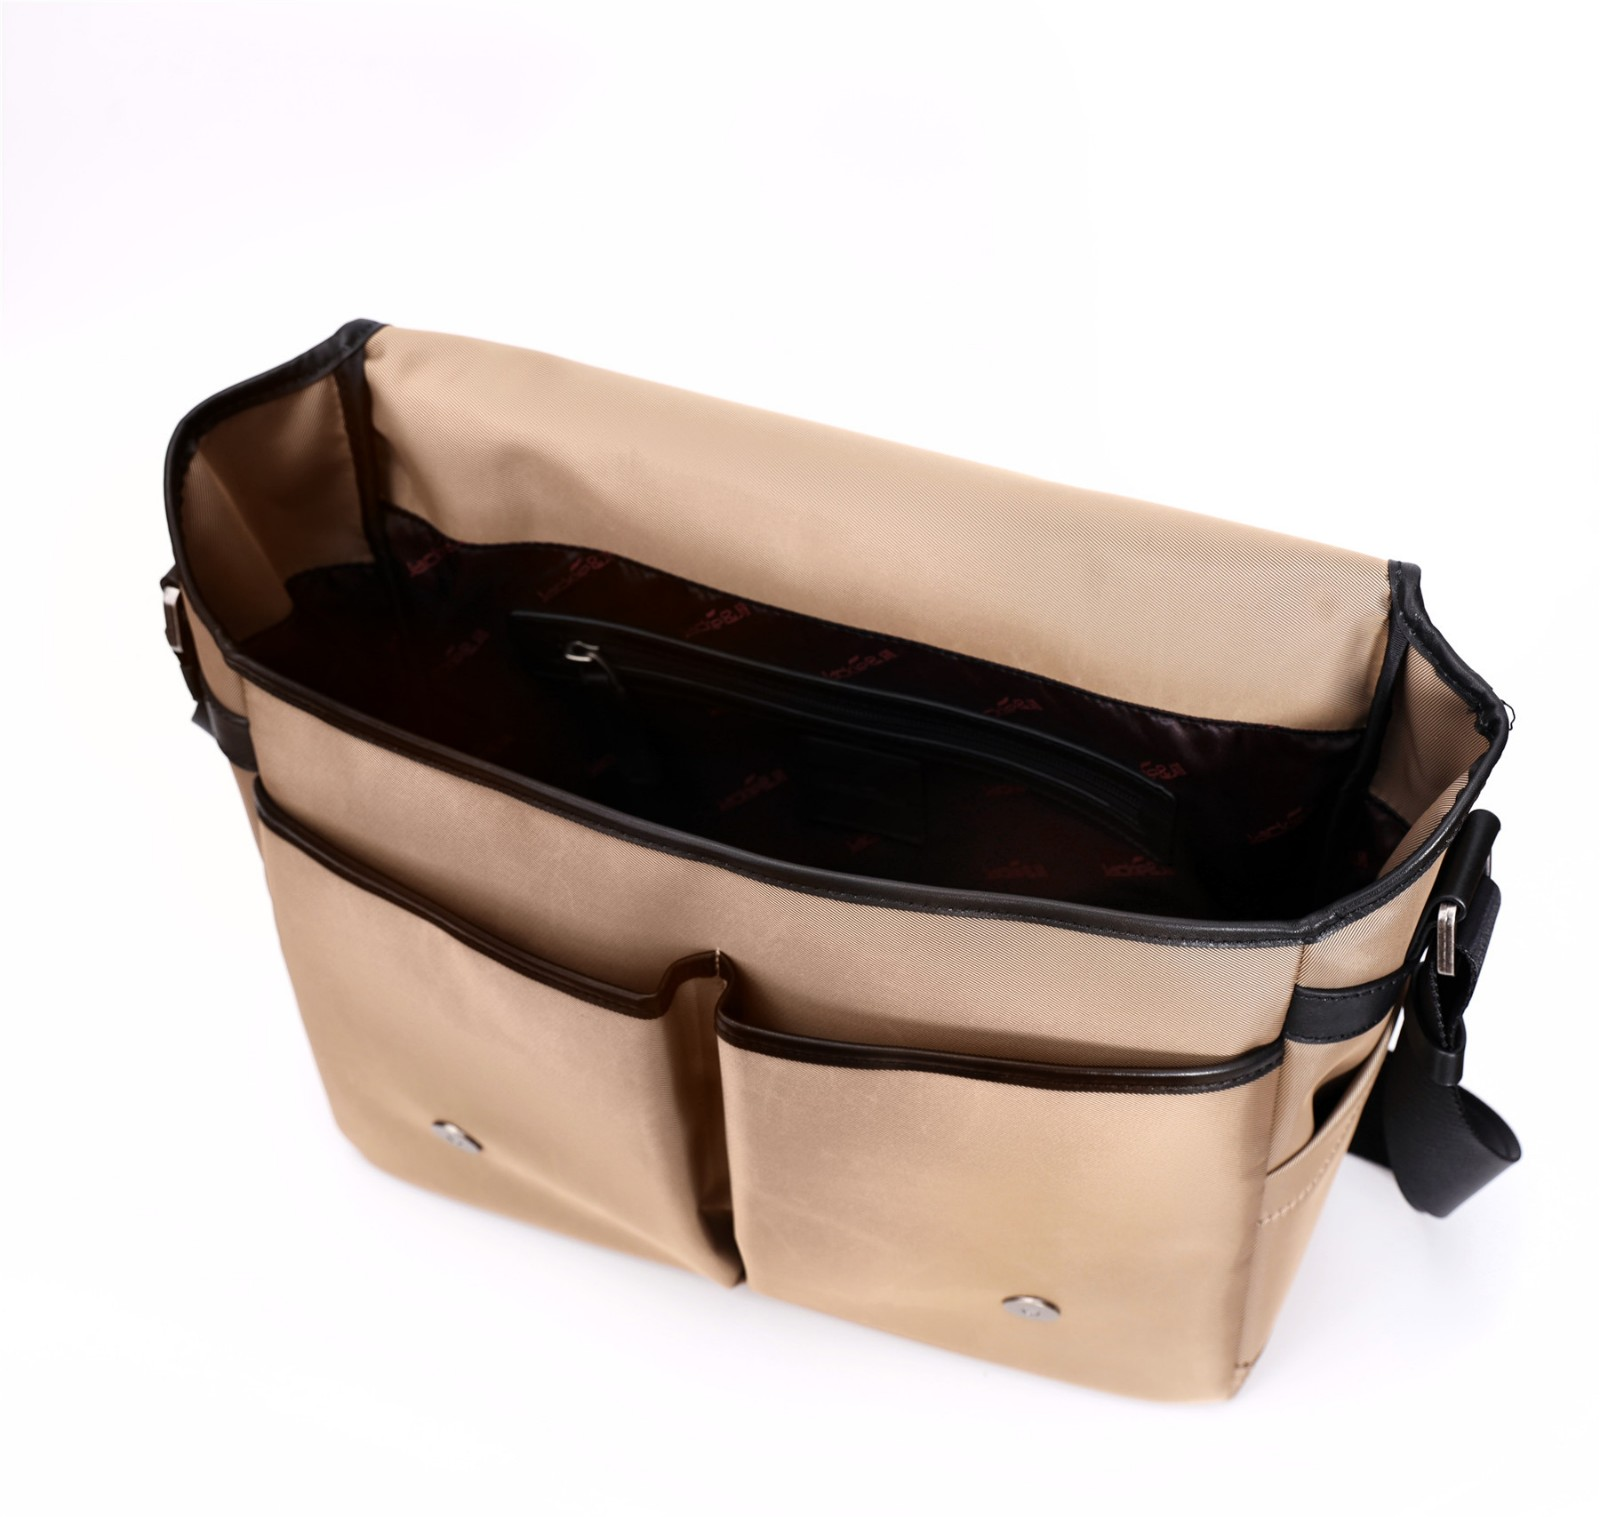 GF bags-Best Leather Messenger Bag Supplier, Mens Fashion Messenger Bag | Gf Bags-7